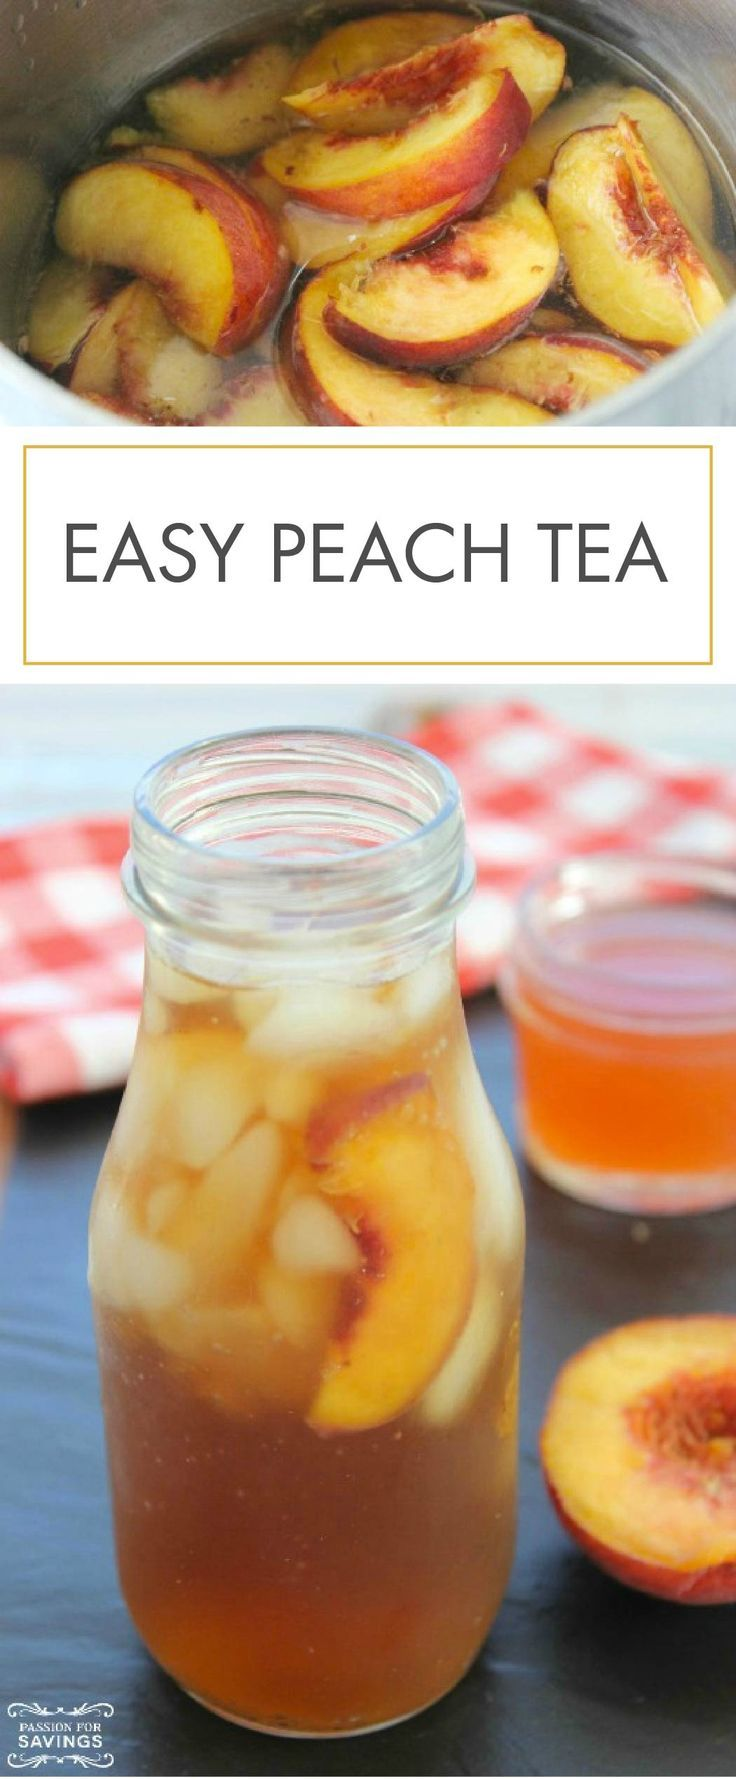 This Easy Peach Tea is the perfect drink recipe for grilling out on sunny days with friends! It�s so refreshing, and you will love the chunks of fresh fruit. illdrinktothat